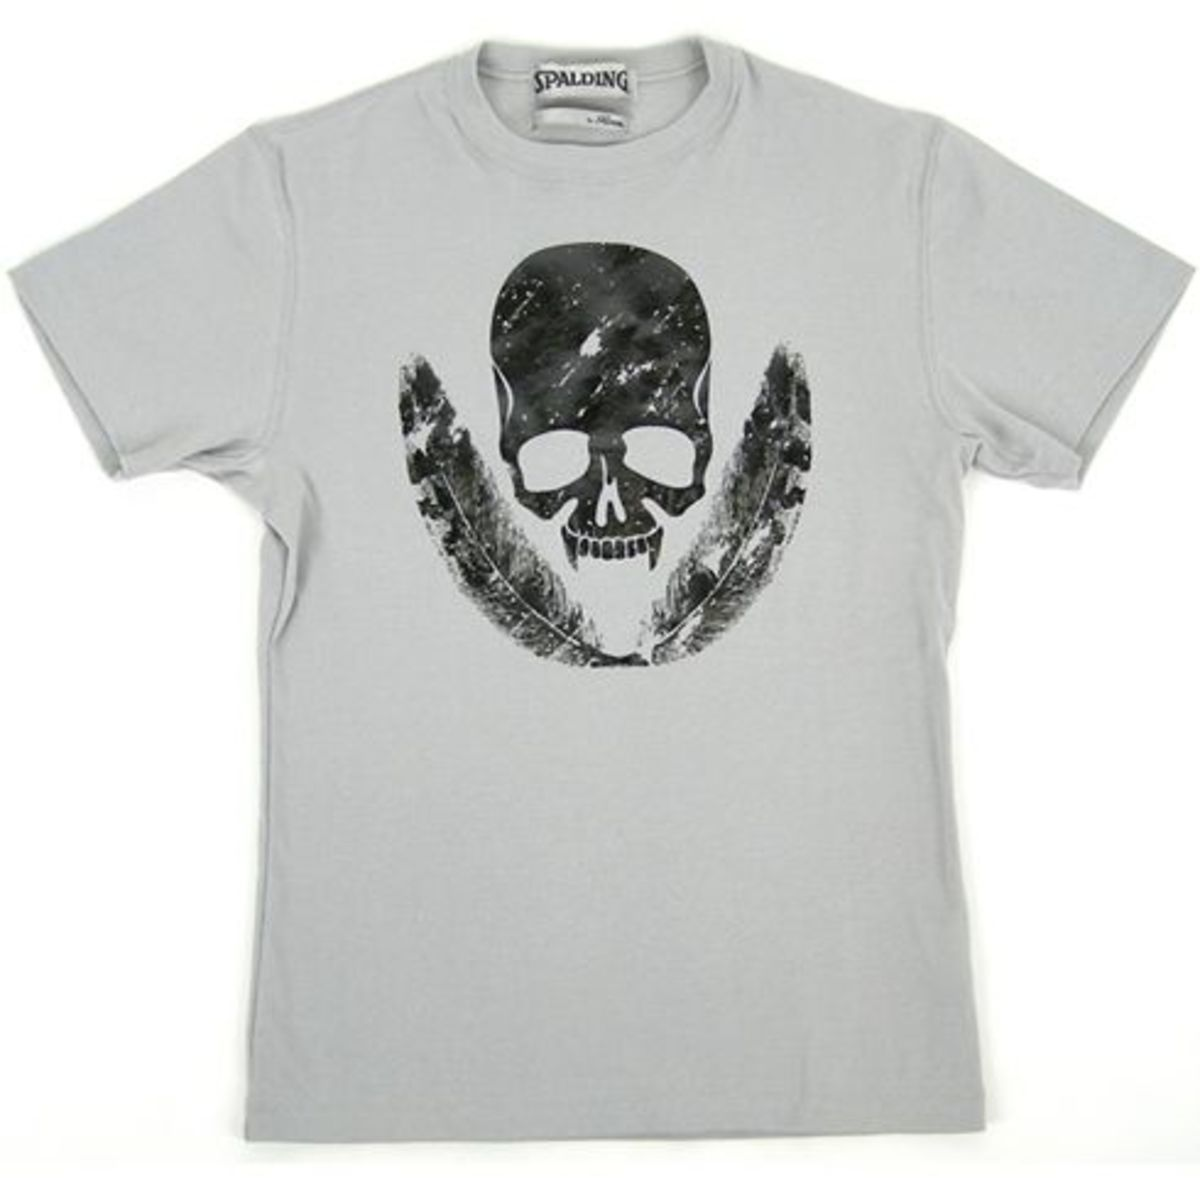 SPALDING by ROEN - Printed T-Shirt